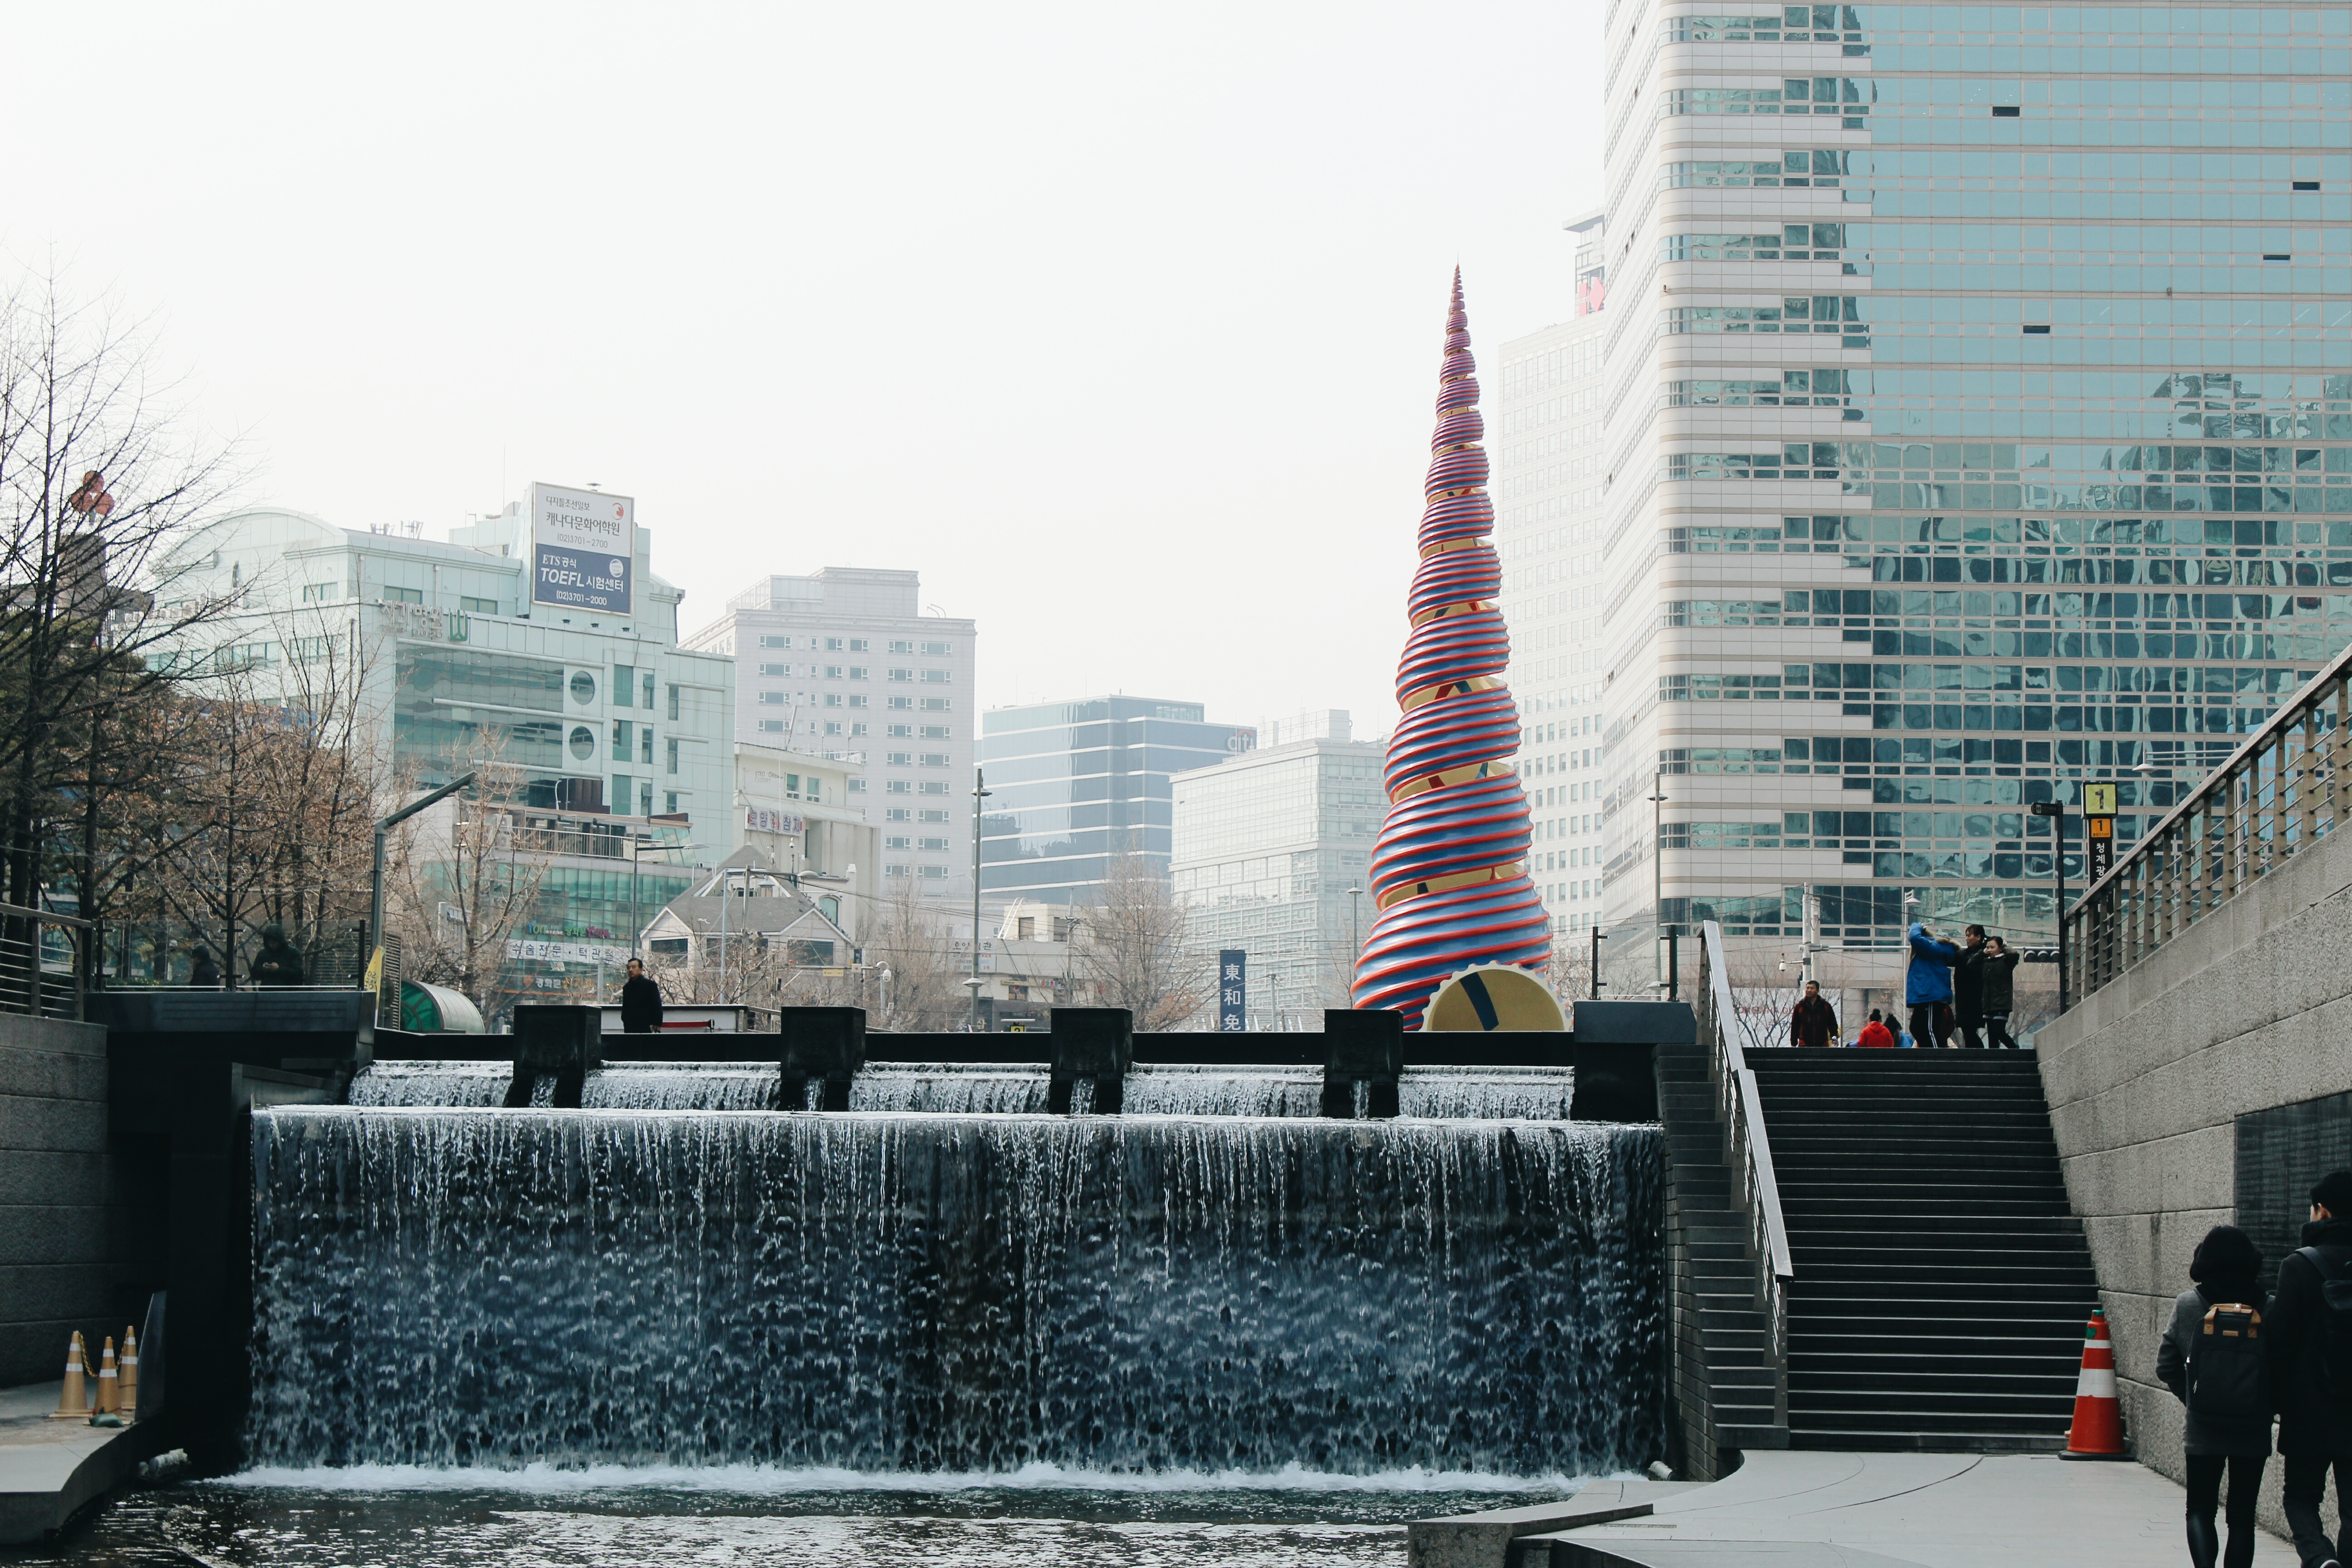 A view of the spirally masterpiece representing a Korean bojagi at the beginning of the Cheonggyecheon.